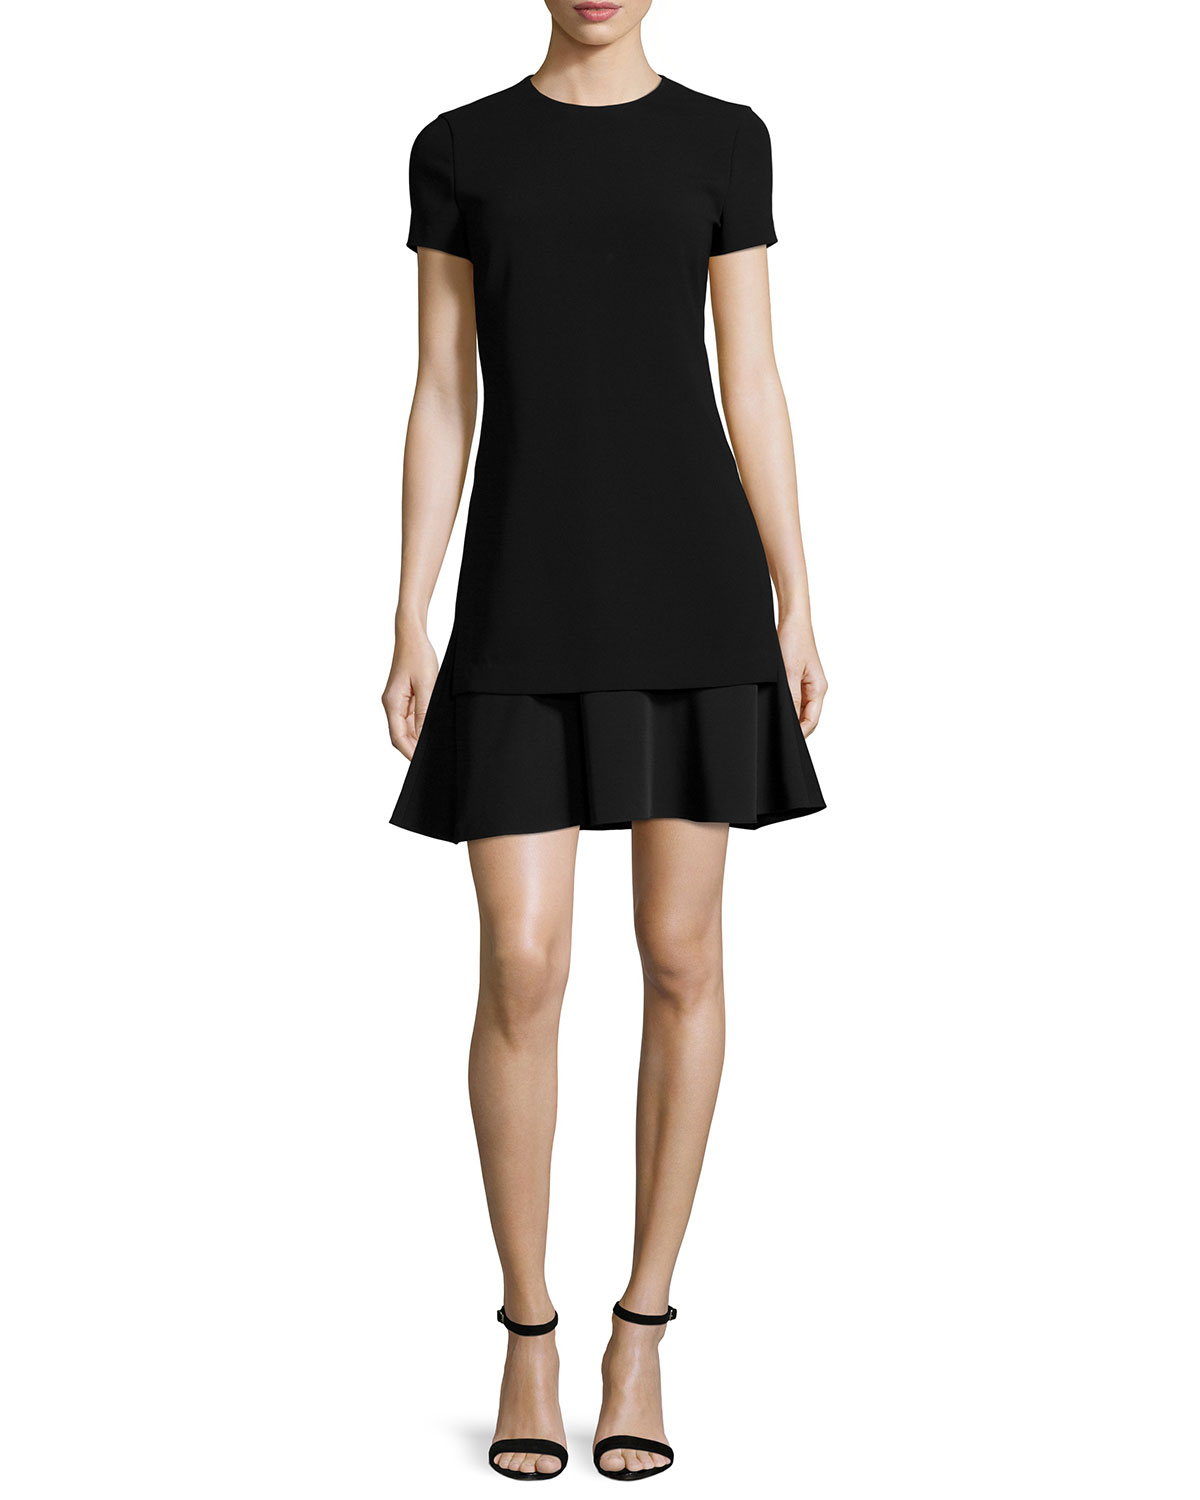 Malkan Admiral Crepe Dress, Size: 0, BLACK - Theory